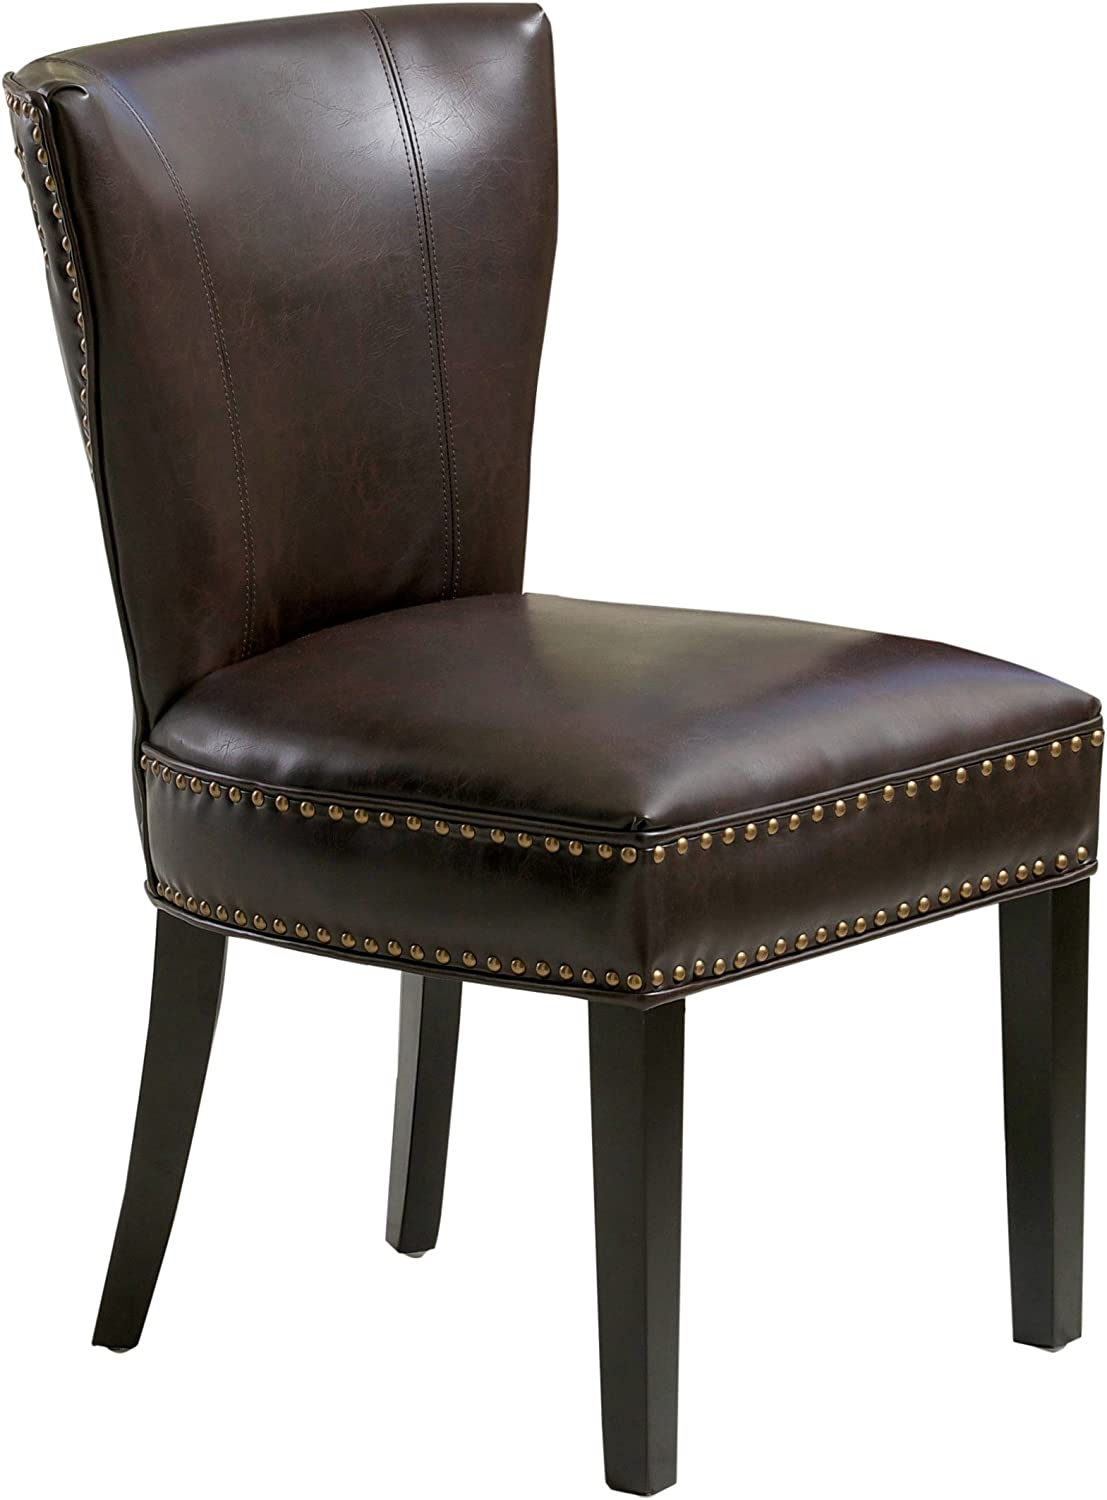 Best Selling Courier shipping free Jackie Leather San Jose Mall Dining Brown Accent Chair